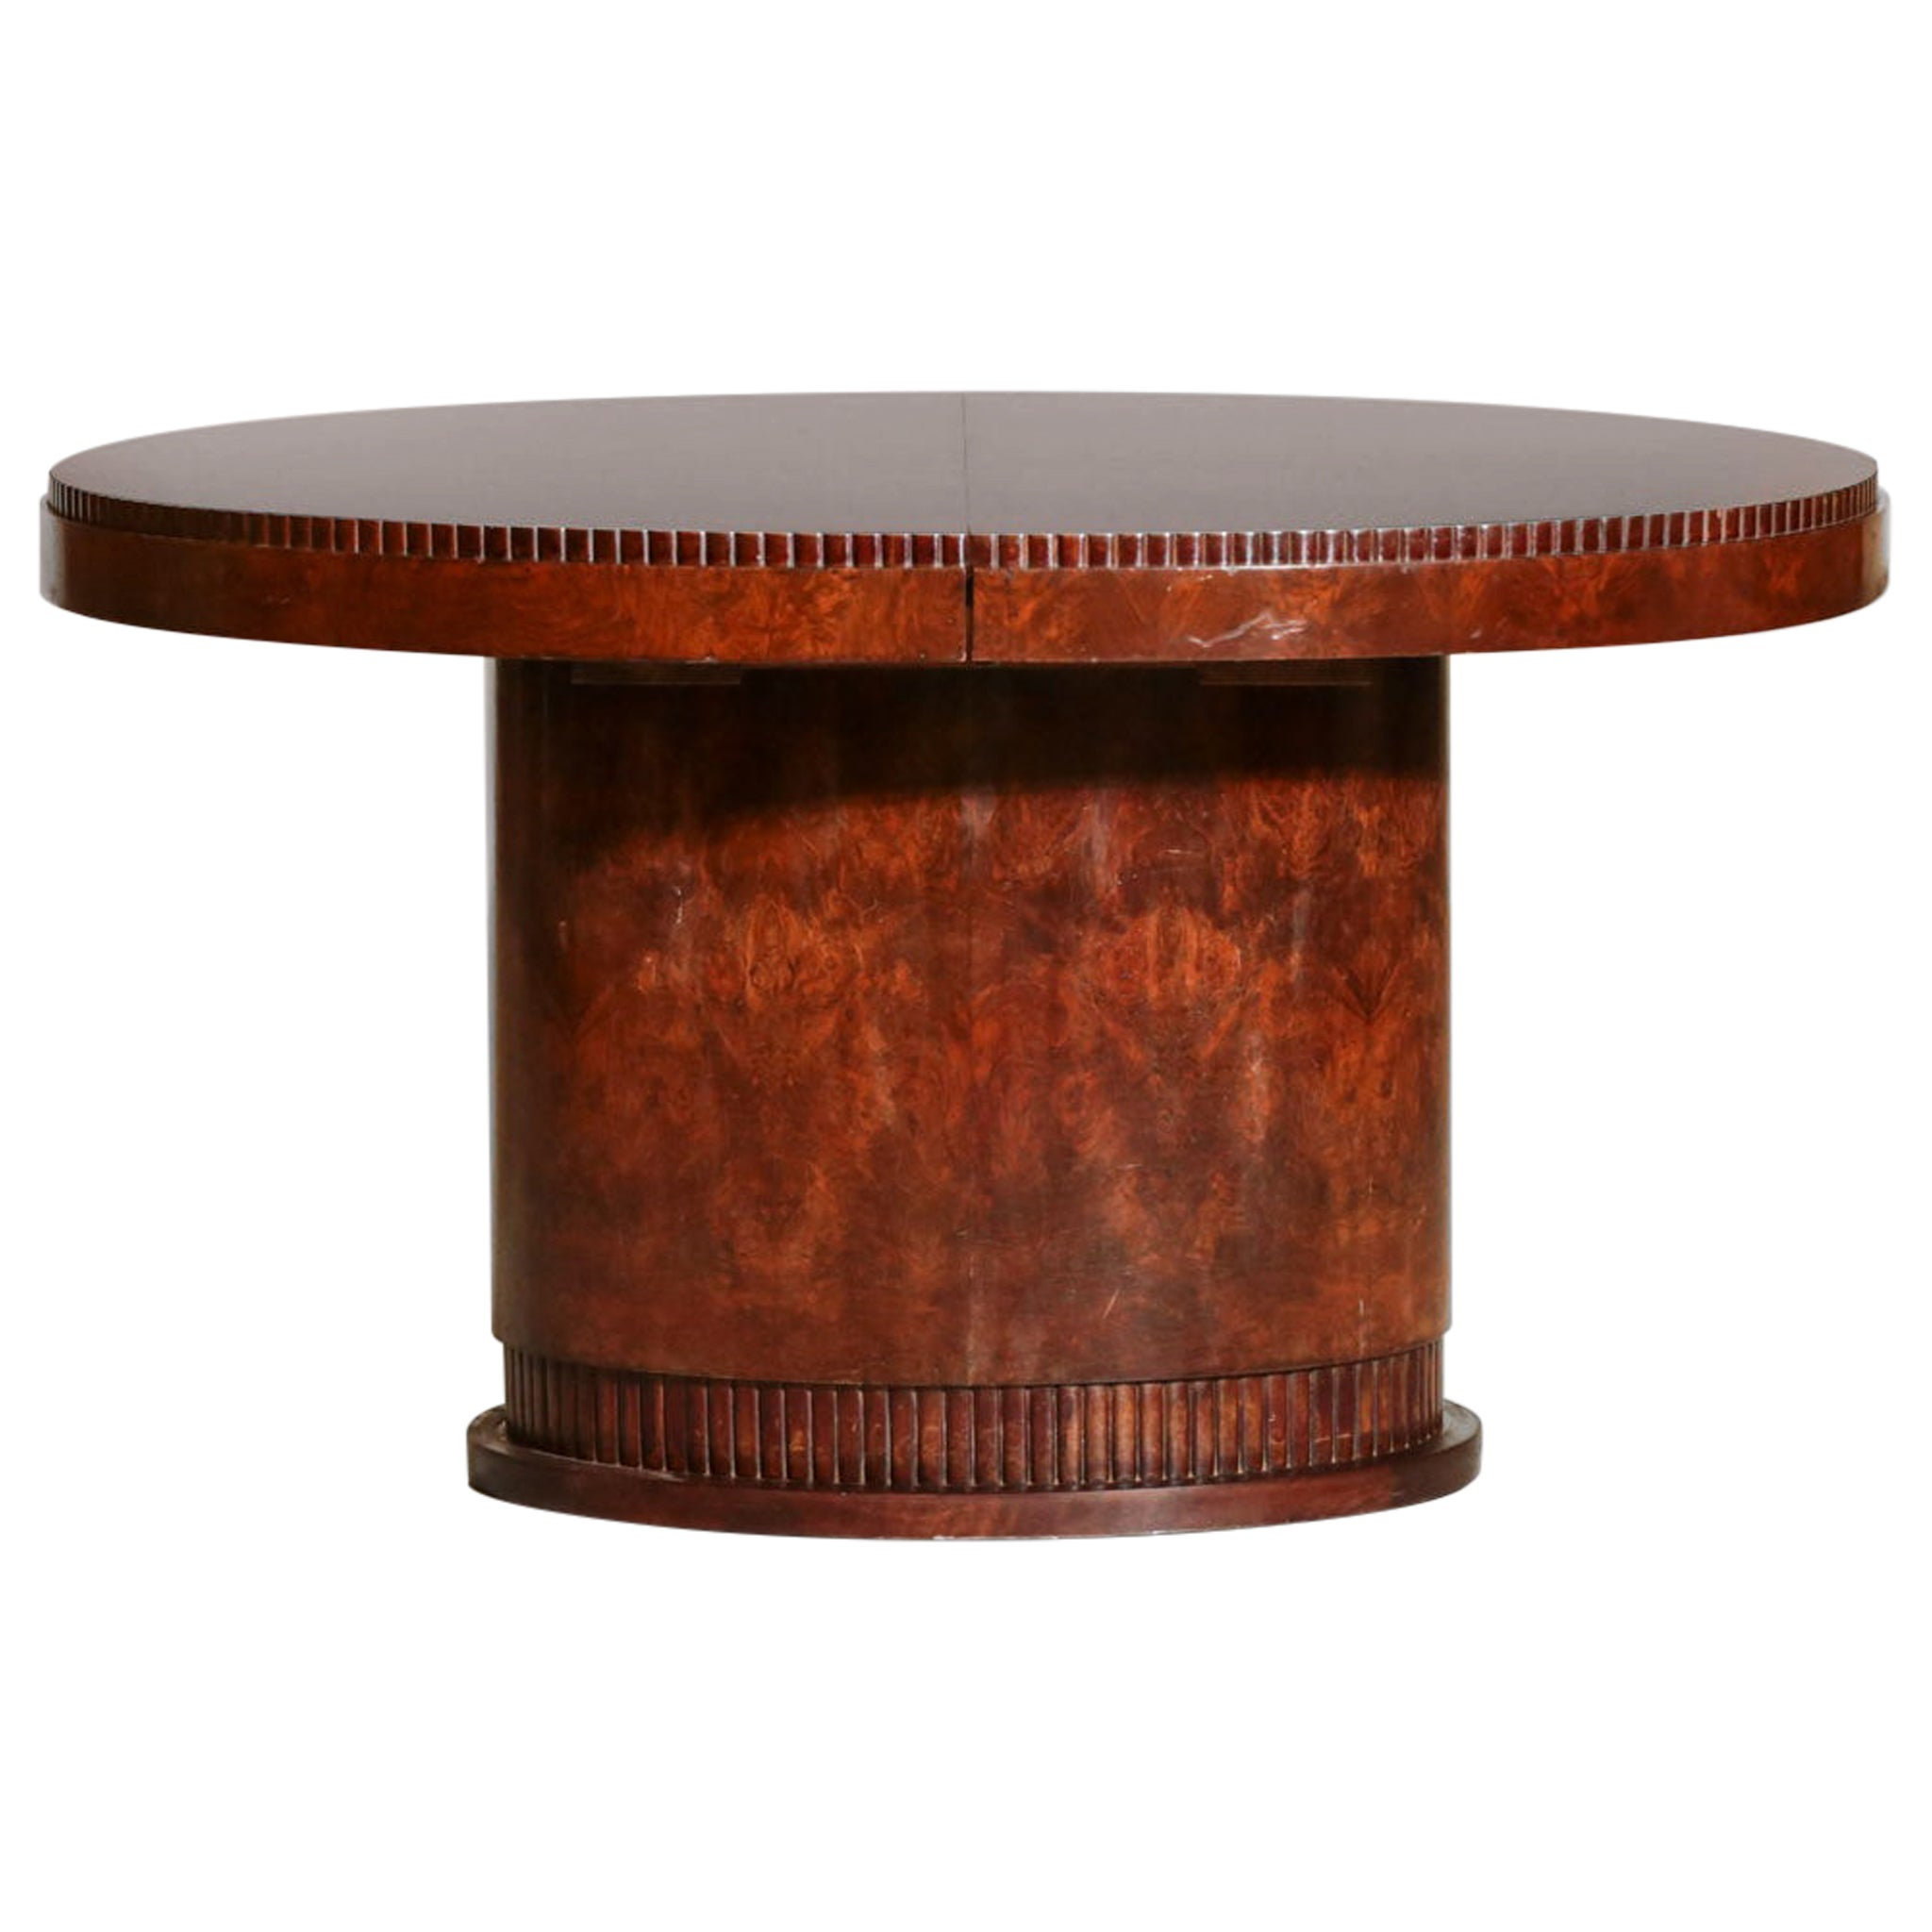 French Art Deco Dining Oval Table, Vintage 1930s Modernist Burl Wood